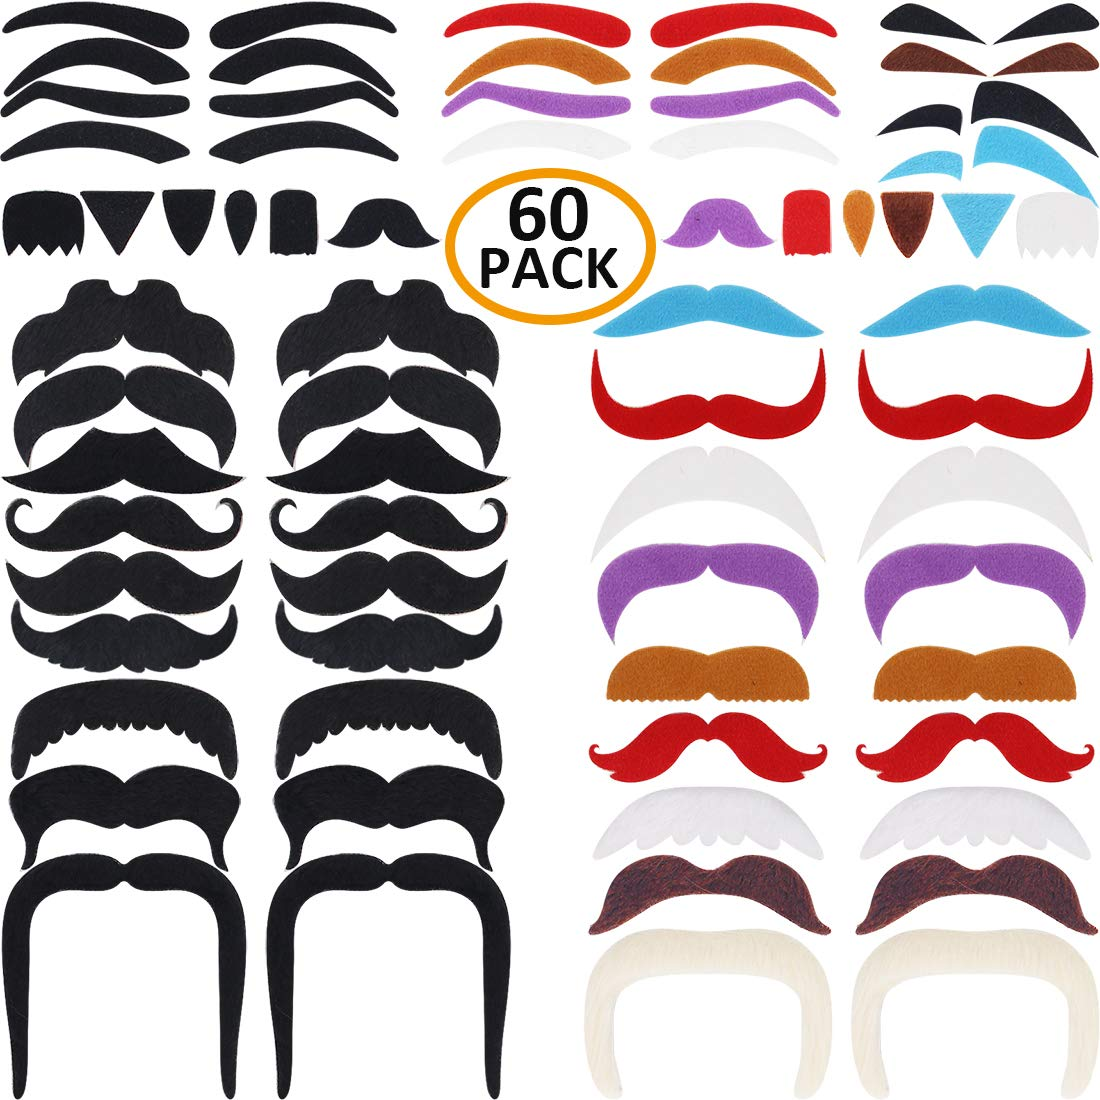 DecoTiny 60 Pack Stick On Fake Mustache Eyebrow Beard Self Adhesive Costume for Kids and Adults